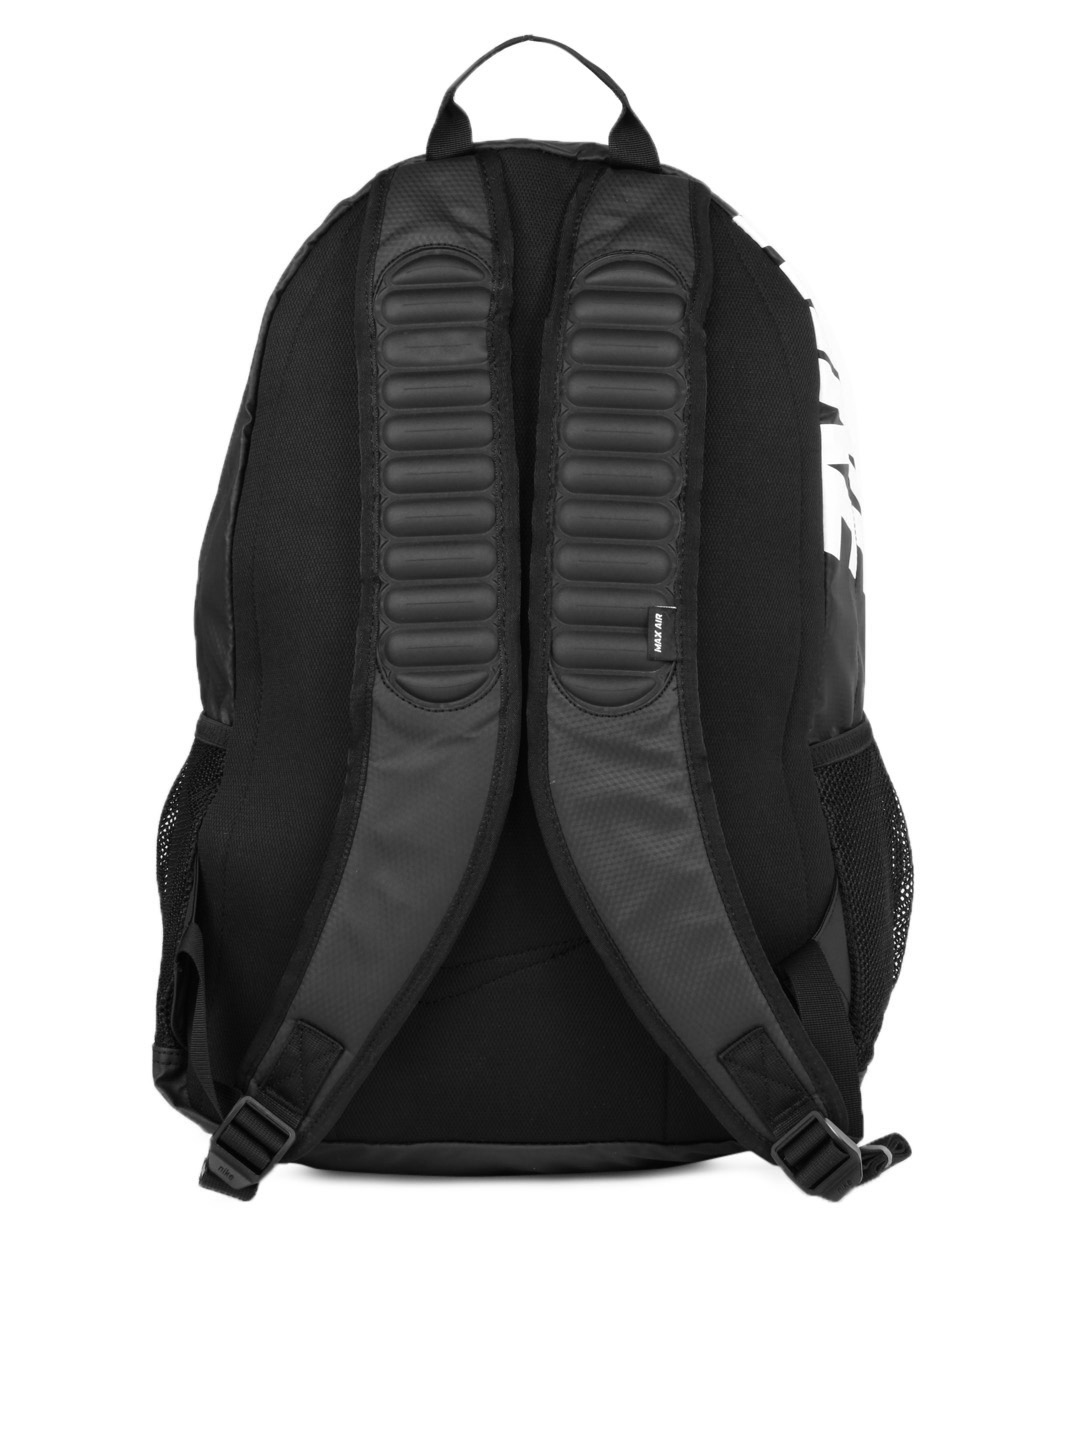 nike team black max air large backpack with laptop sleeve